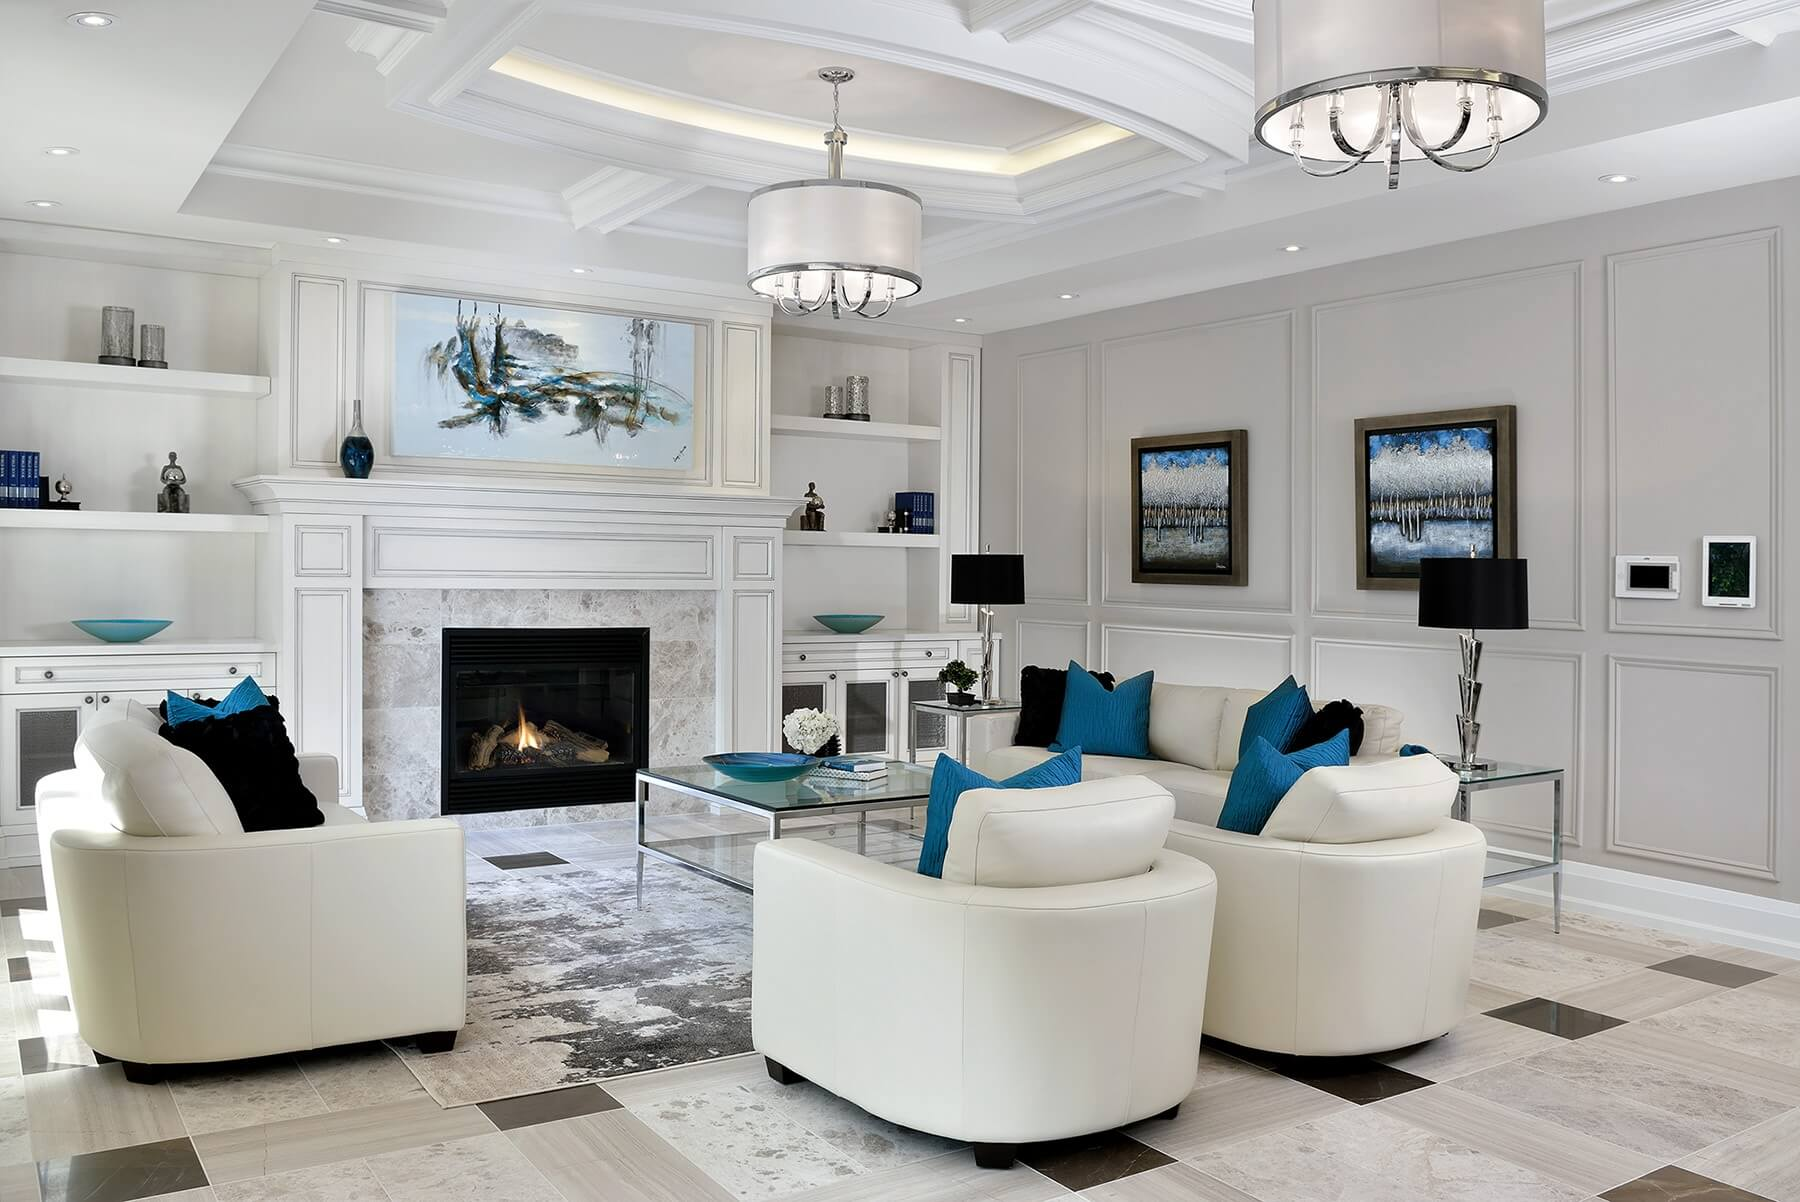 Elegant Home Interior with Incredible Custom Ceilings by Vertex Project Management